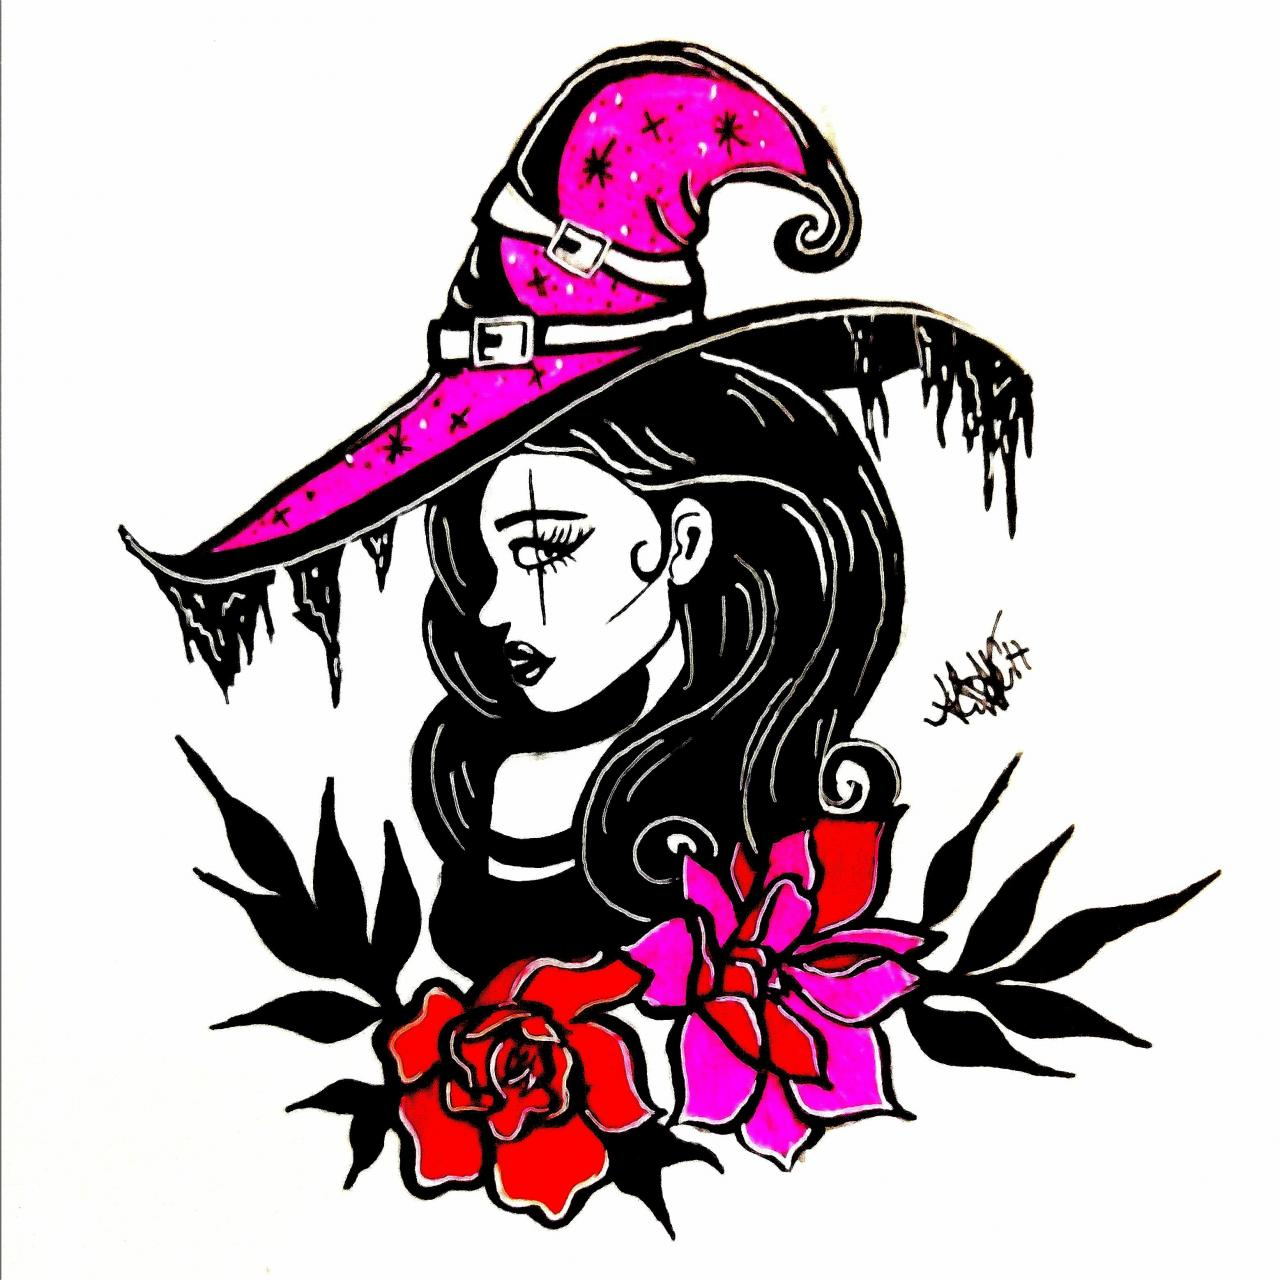 Witchy old school inspired design